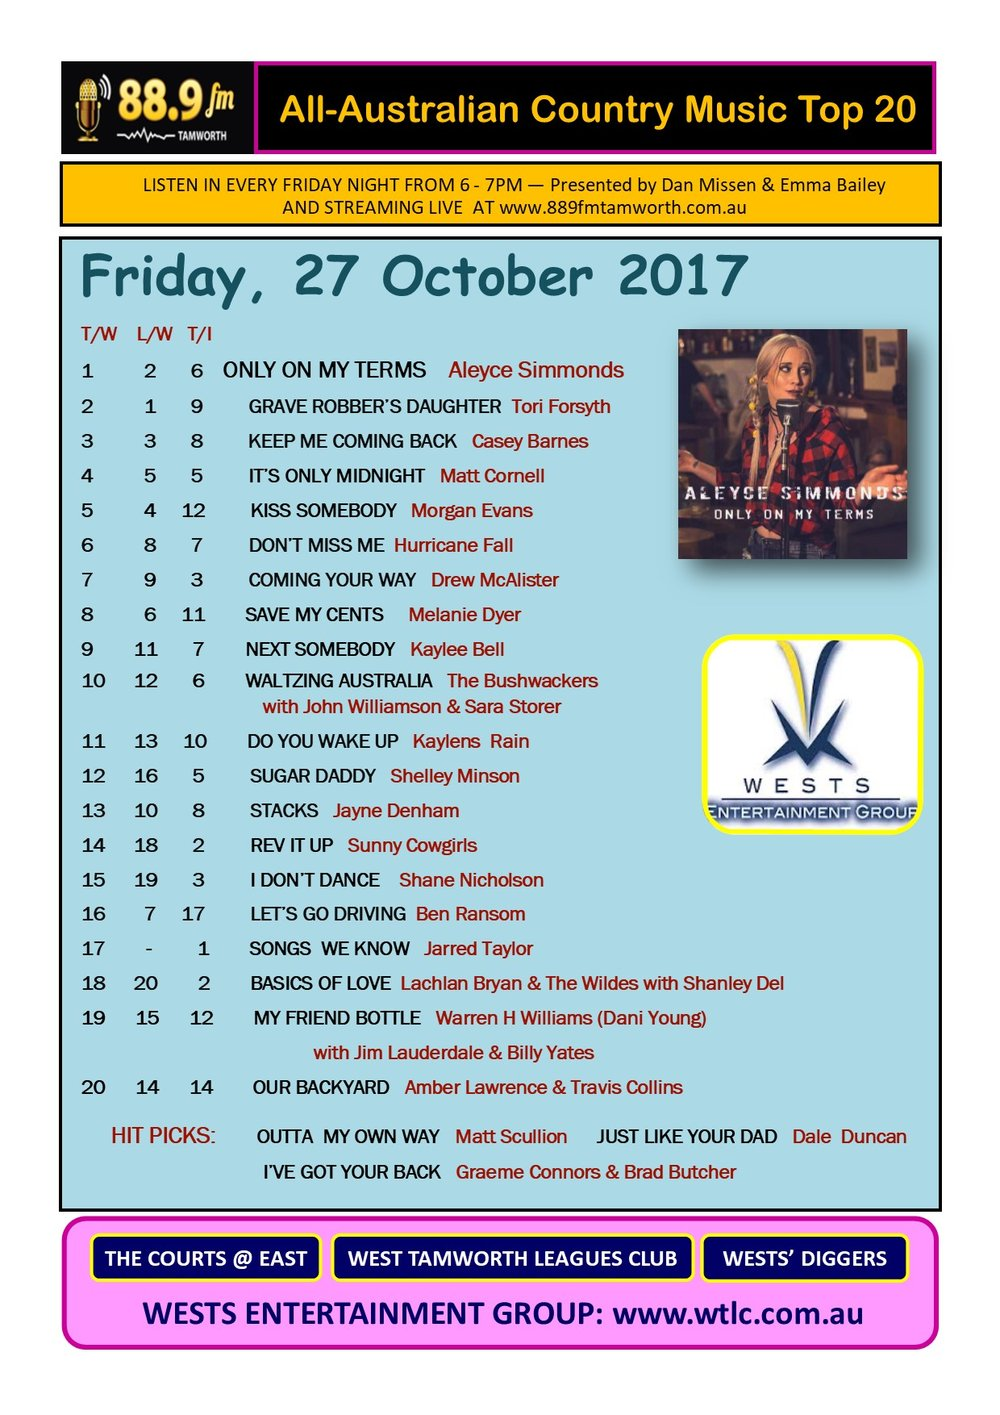 Australian Country Music Top 20 - October 27